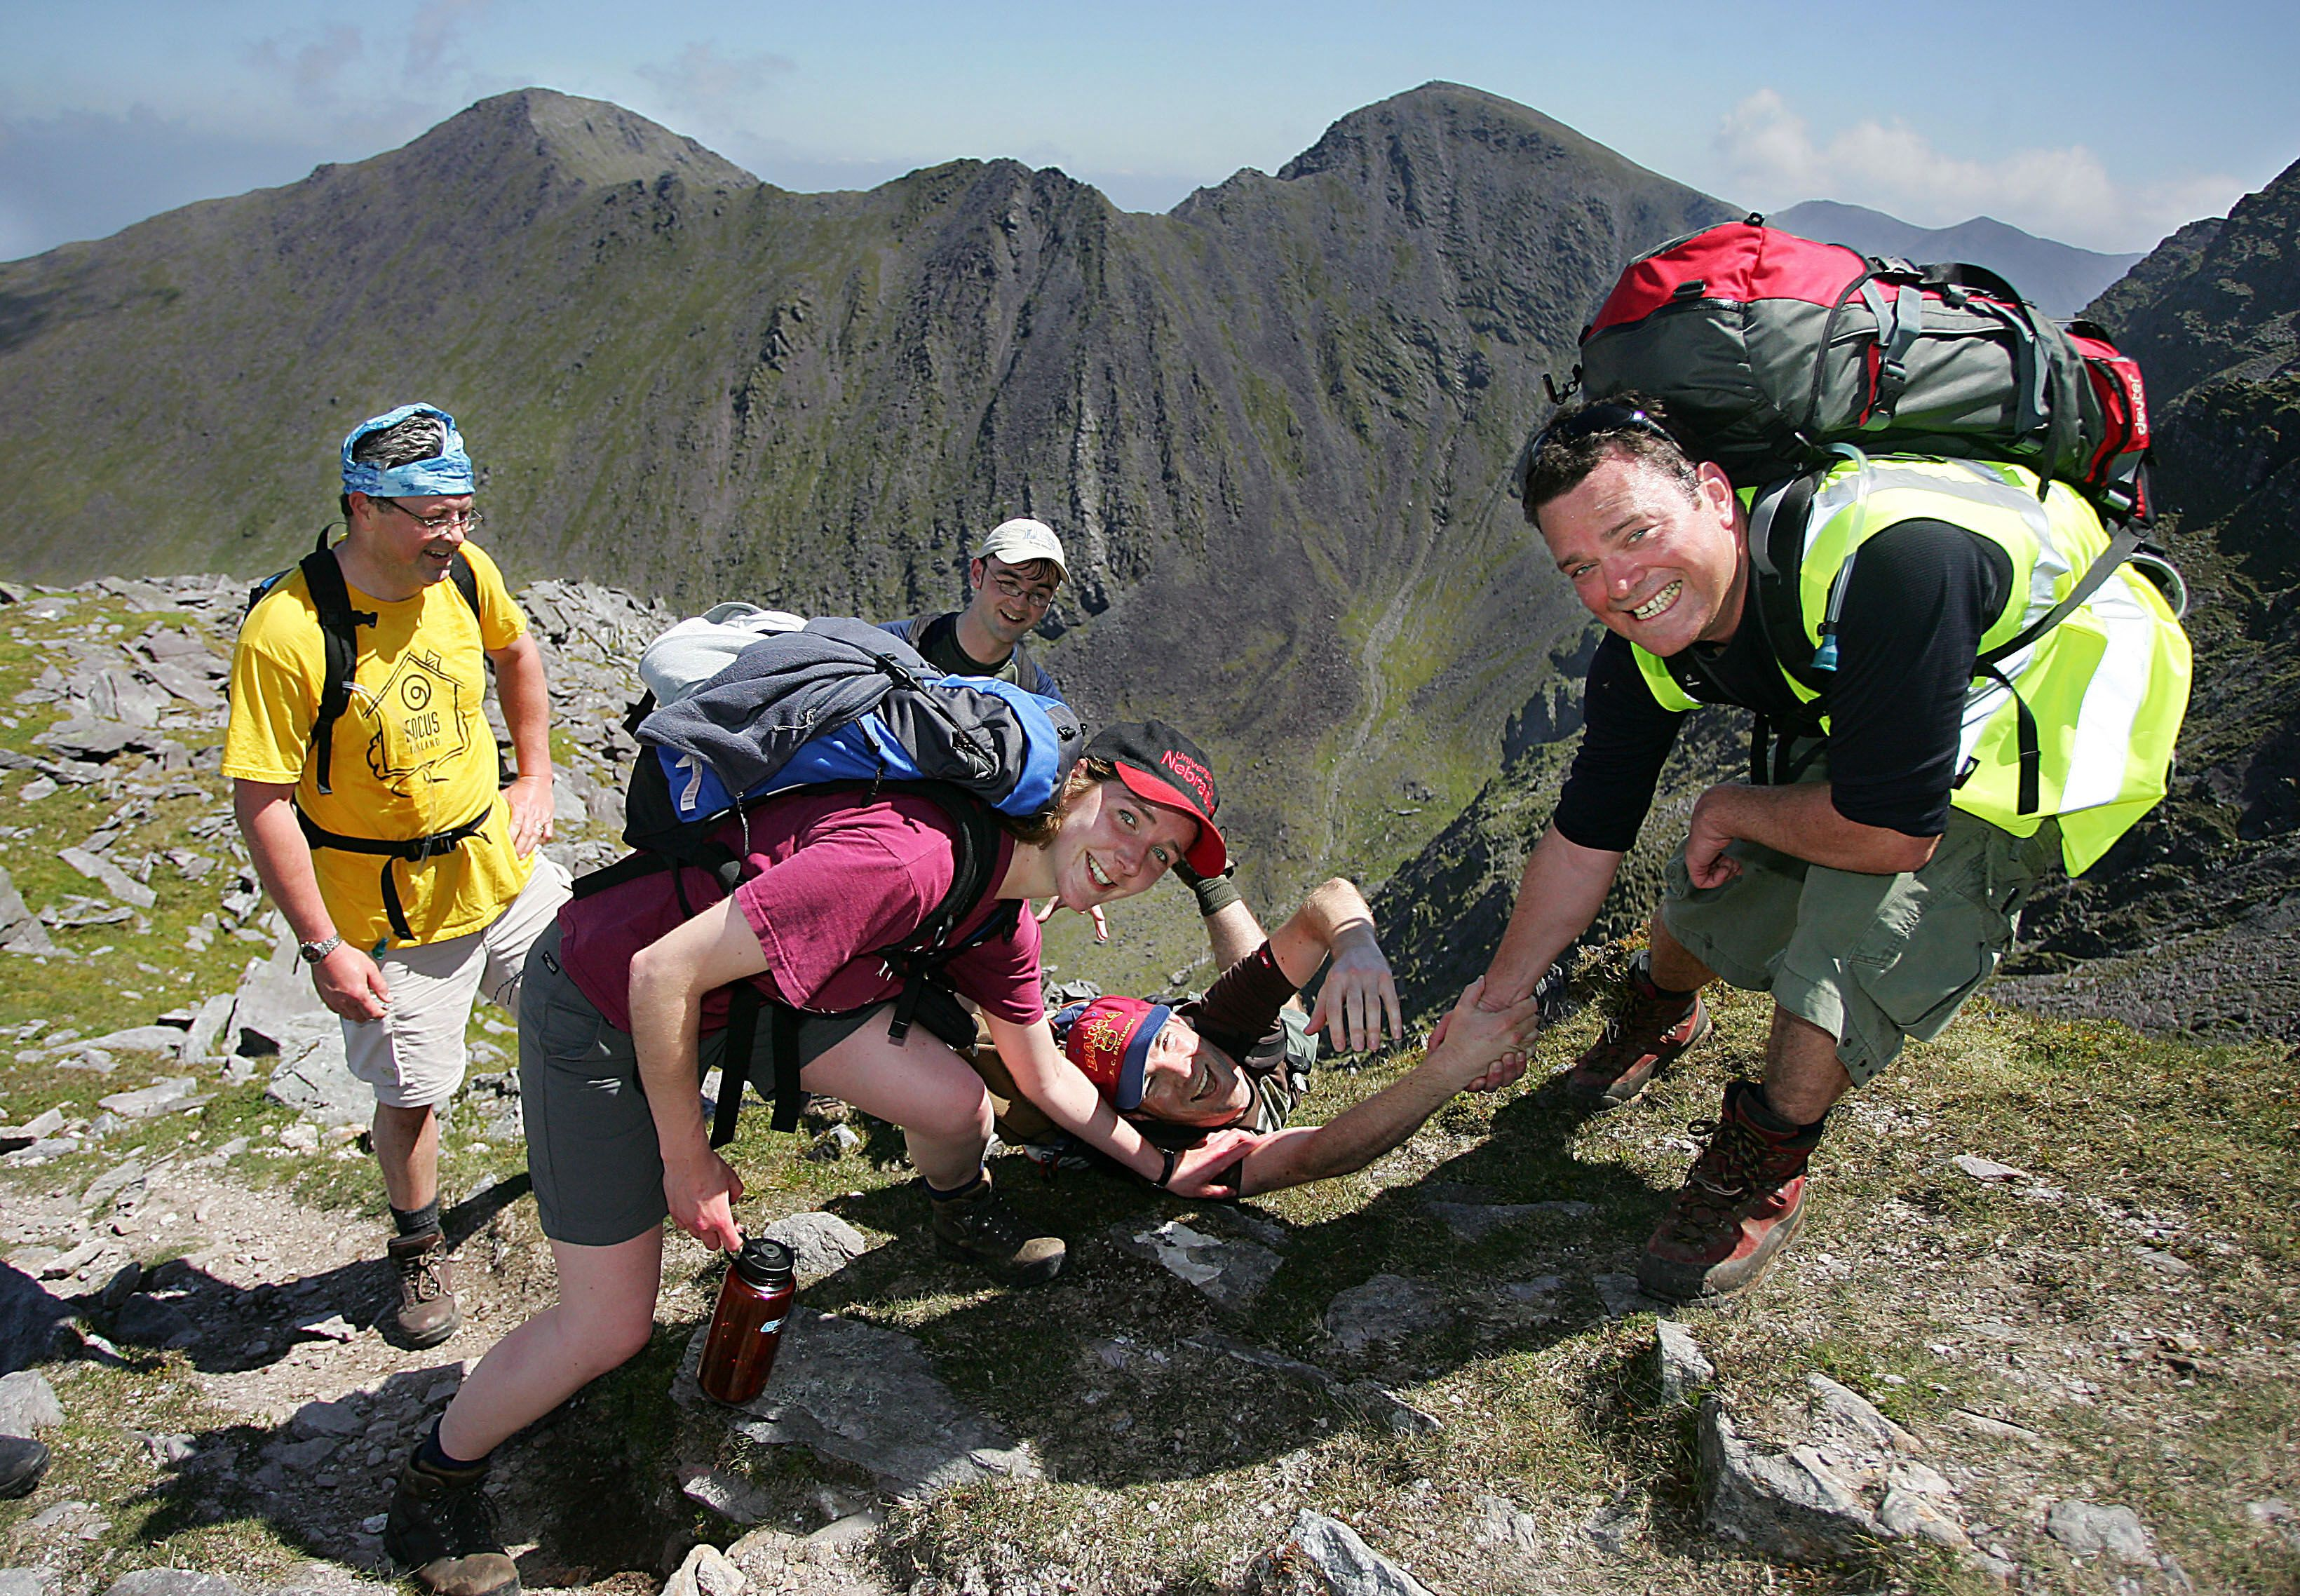 Four Peaks Challenge, Ireland. Photo: Focus Ireland